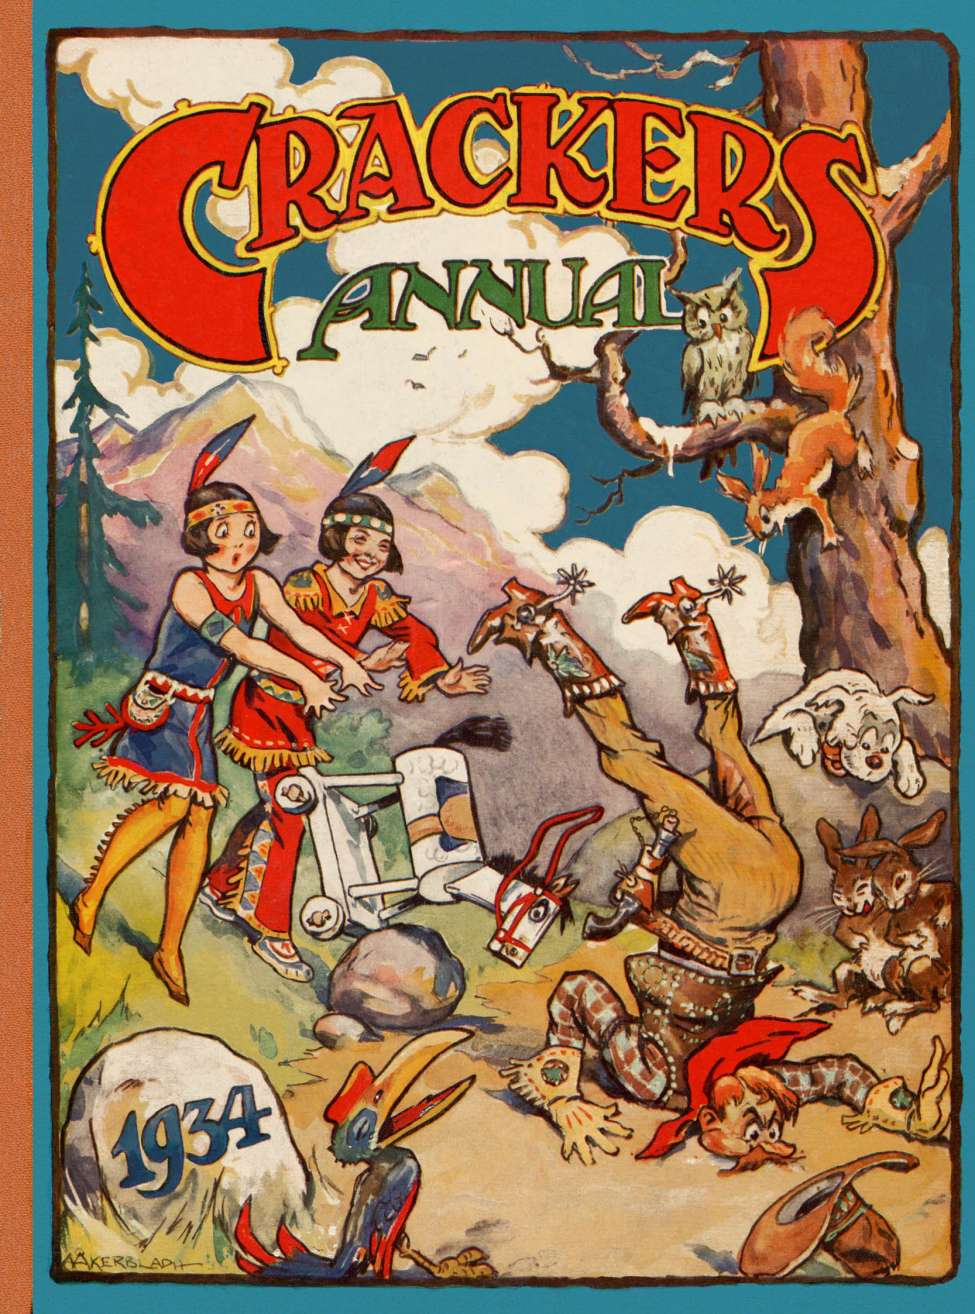 Comic Book Cover For Crackers Annual (1934)